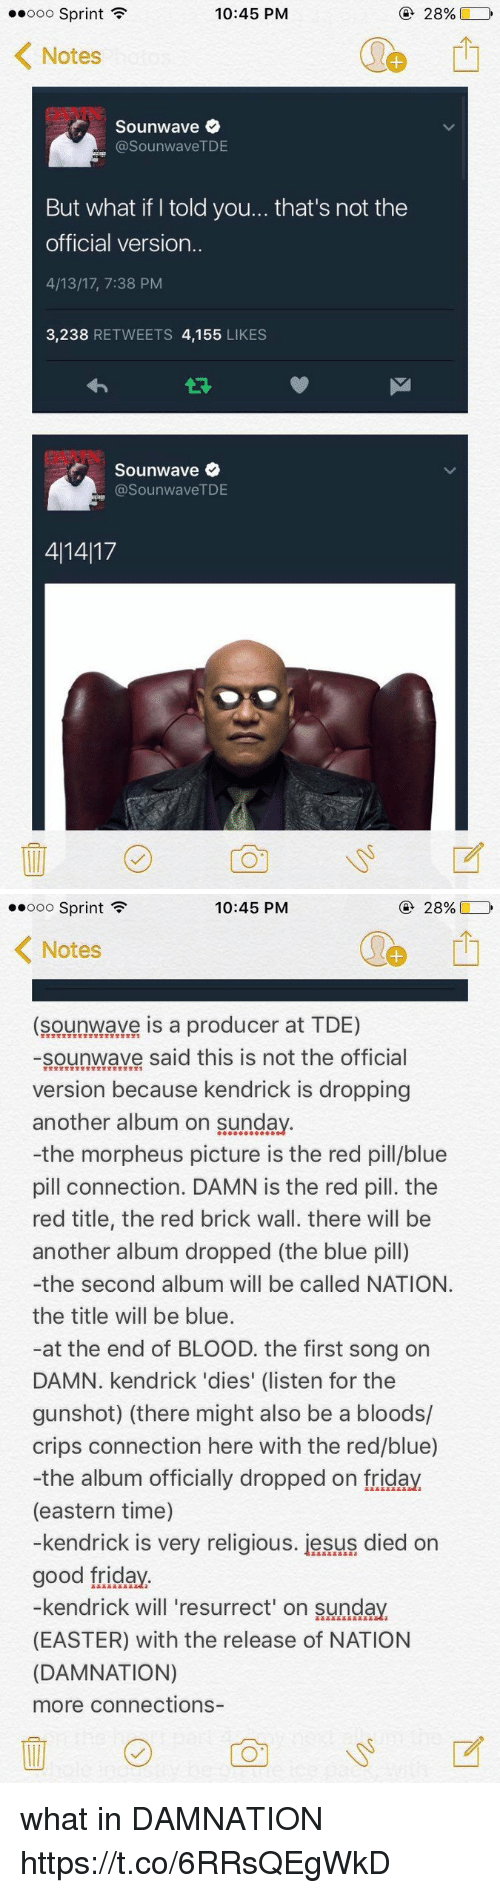 Morpheus: 10:45 PM  Ooo Sprint  F  28%  Notes  Sounwave  asounwaveTDE  But what if told you... that's not the  official version.  4/13/17, 7:38 PM  3,238  RETWEETS 4,155  LIKES  Sounwave  (a SounwaveTDE  411417   10:45 PM  28%,  Ooo Sprint  F  K Notes  (sounwave is a producer at TDE)  sounwave said this is not the official  version because kendrick is dropping  another album on Sunday  -the morpheus picture is the red pill/blue  pill connection. DAMN is the red pill. the  red title, the red brick wall. there will be  another album dropped (the blue pill)  -the second album will be called NATION.  the title will be blue.  at the end of BLOOD. the first song on  DAMN. kendrick 'dies' (listen for the  gunshot) (there might also be a bloods/  crips connection here with the red/blue)  -the album officially dropped on friday  (eastern time)  -kendrick is very religious. iesus died on  good friday  kendrick will resurrect on Sunday.  (EASTER) with the release of NATION  (DAMNATION)  more connections what in DAMNATION https://t.co/6RRsQEgWkD